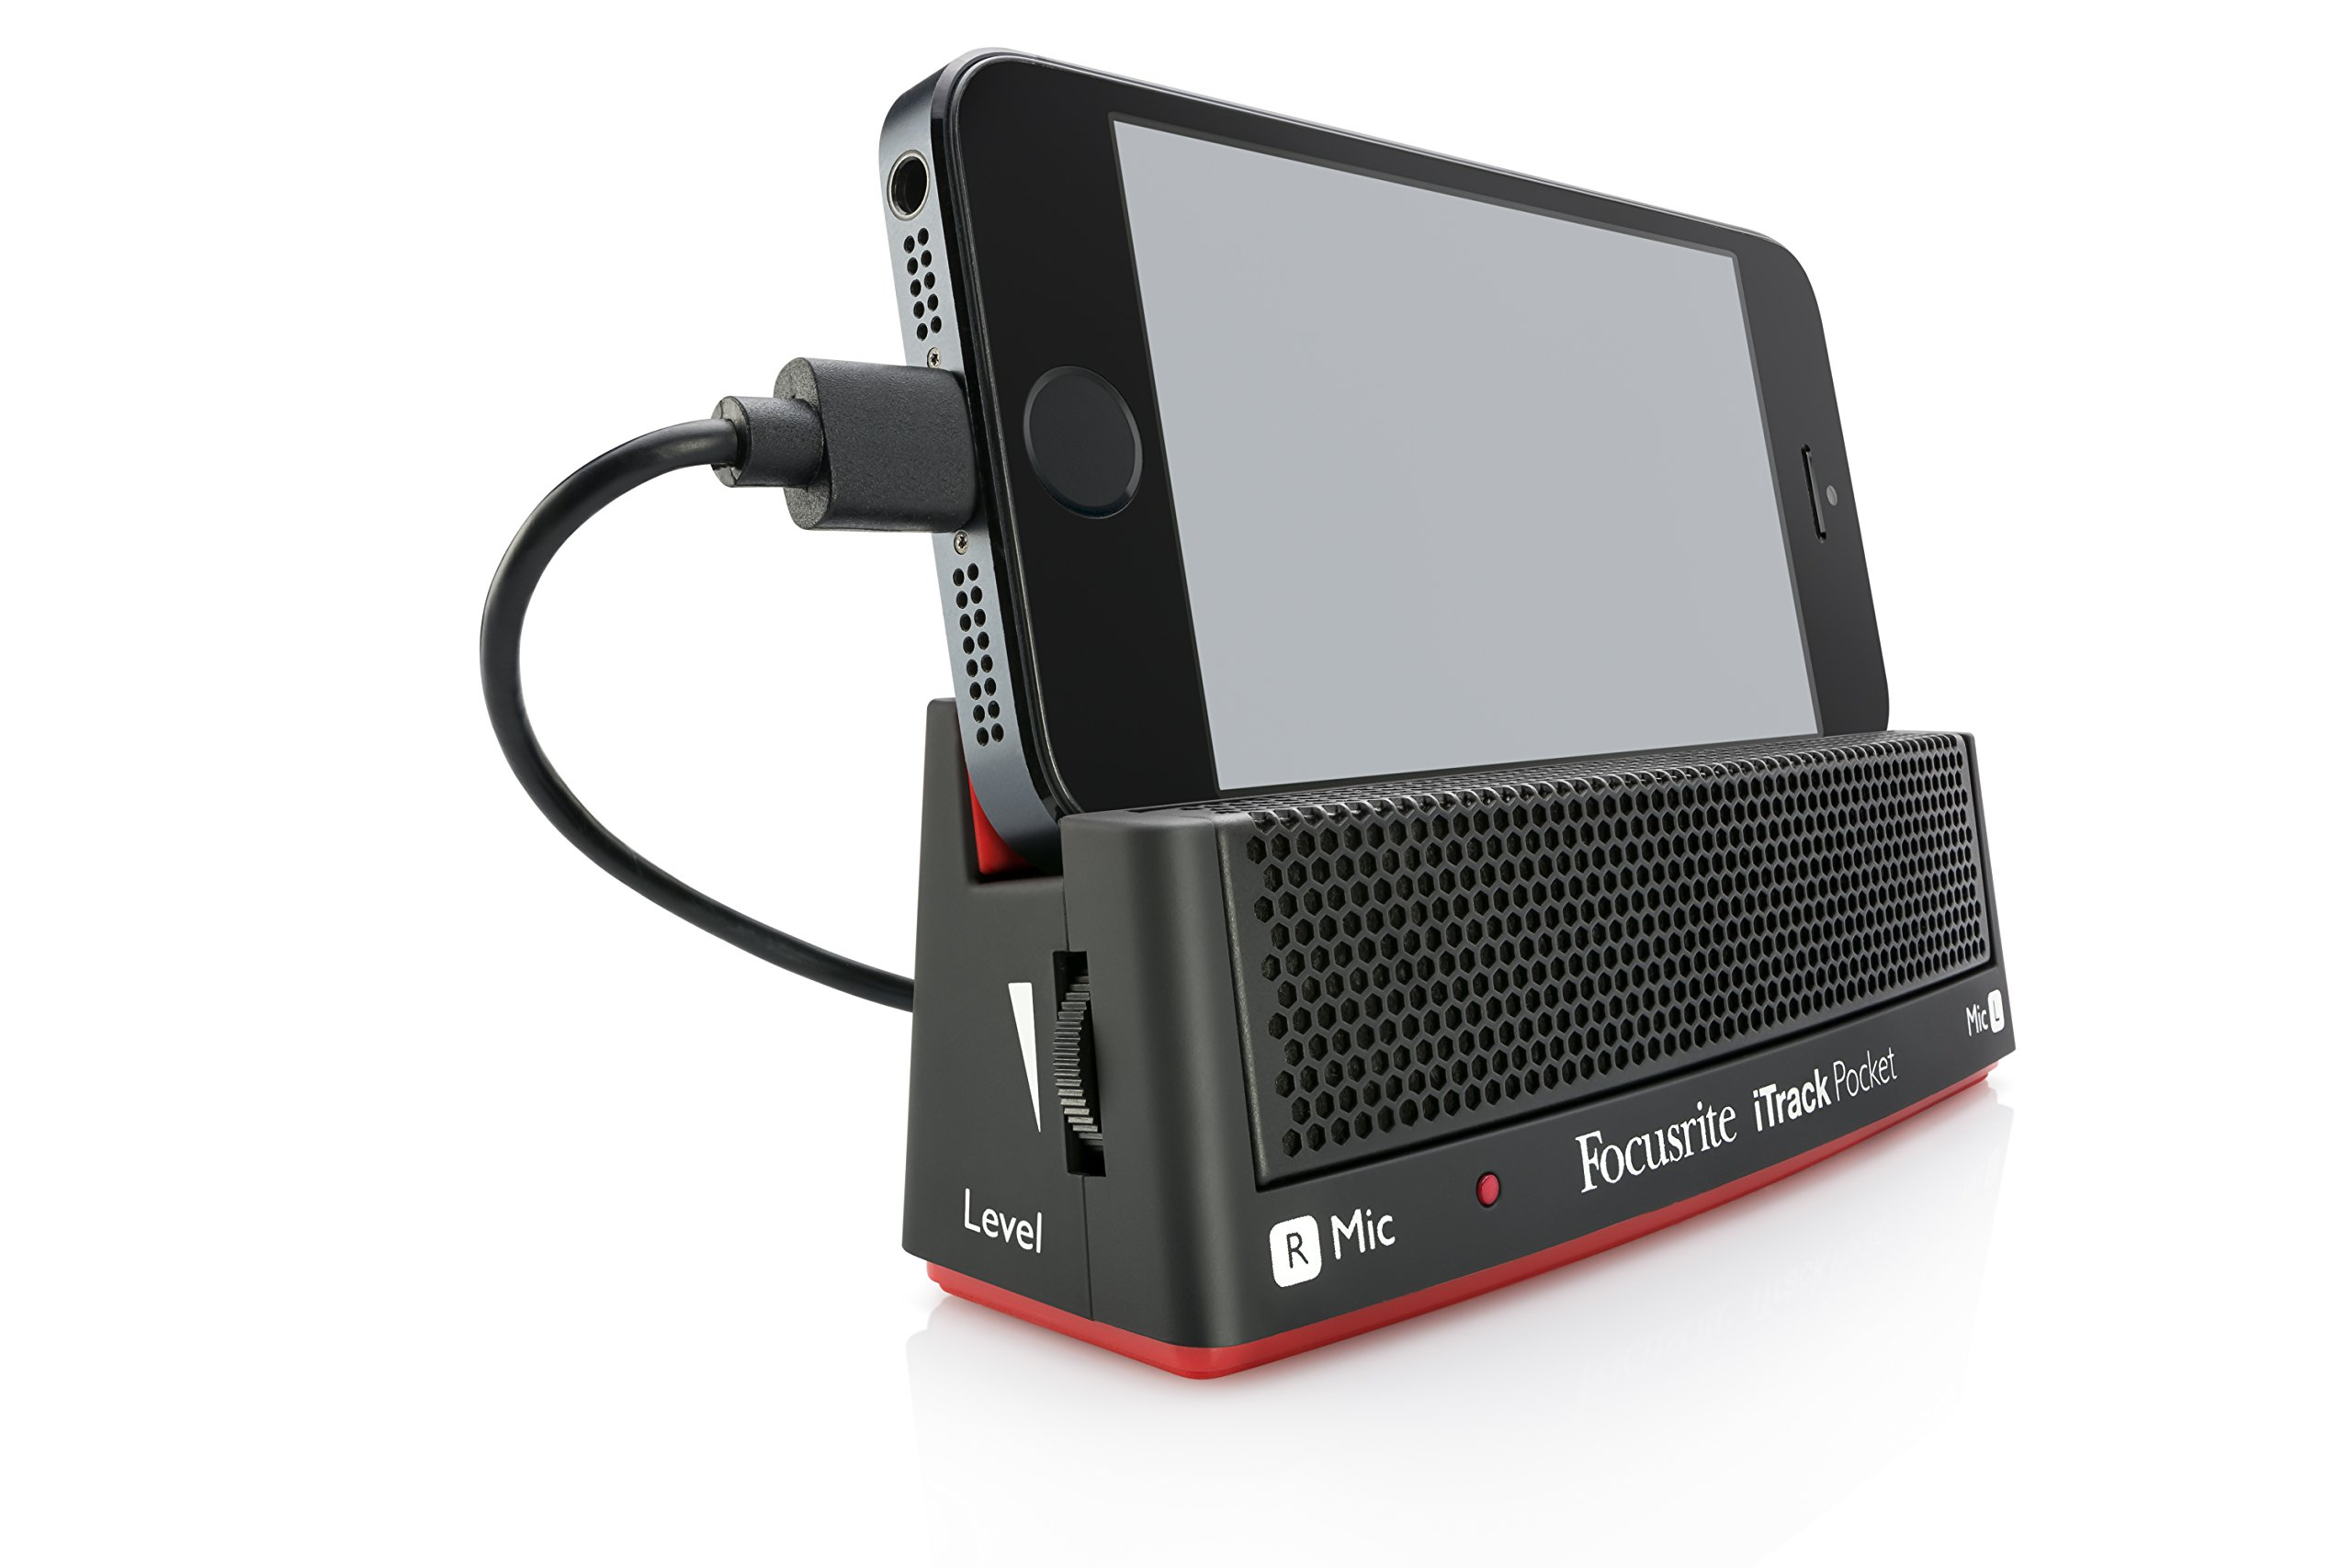 Focusrite iTrack Pocket Portable Stereo Microphone and Guitar Input for iPhone Video Creation and Sharing by Focusrite